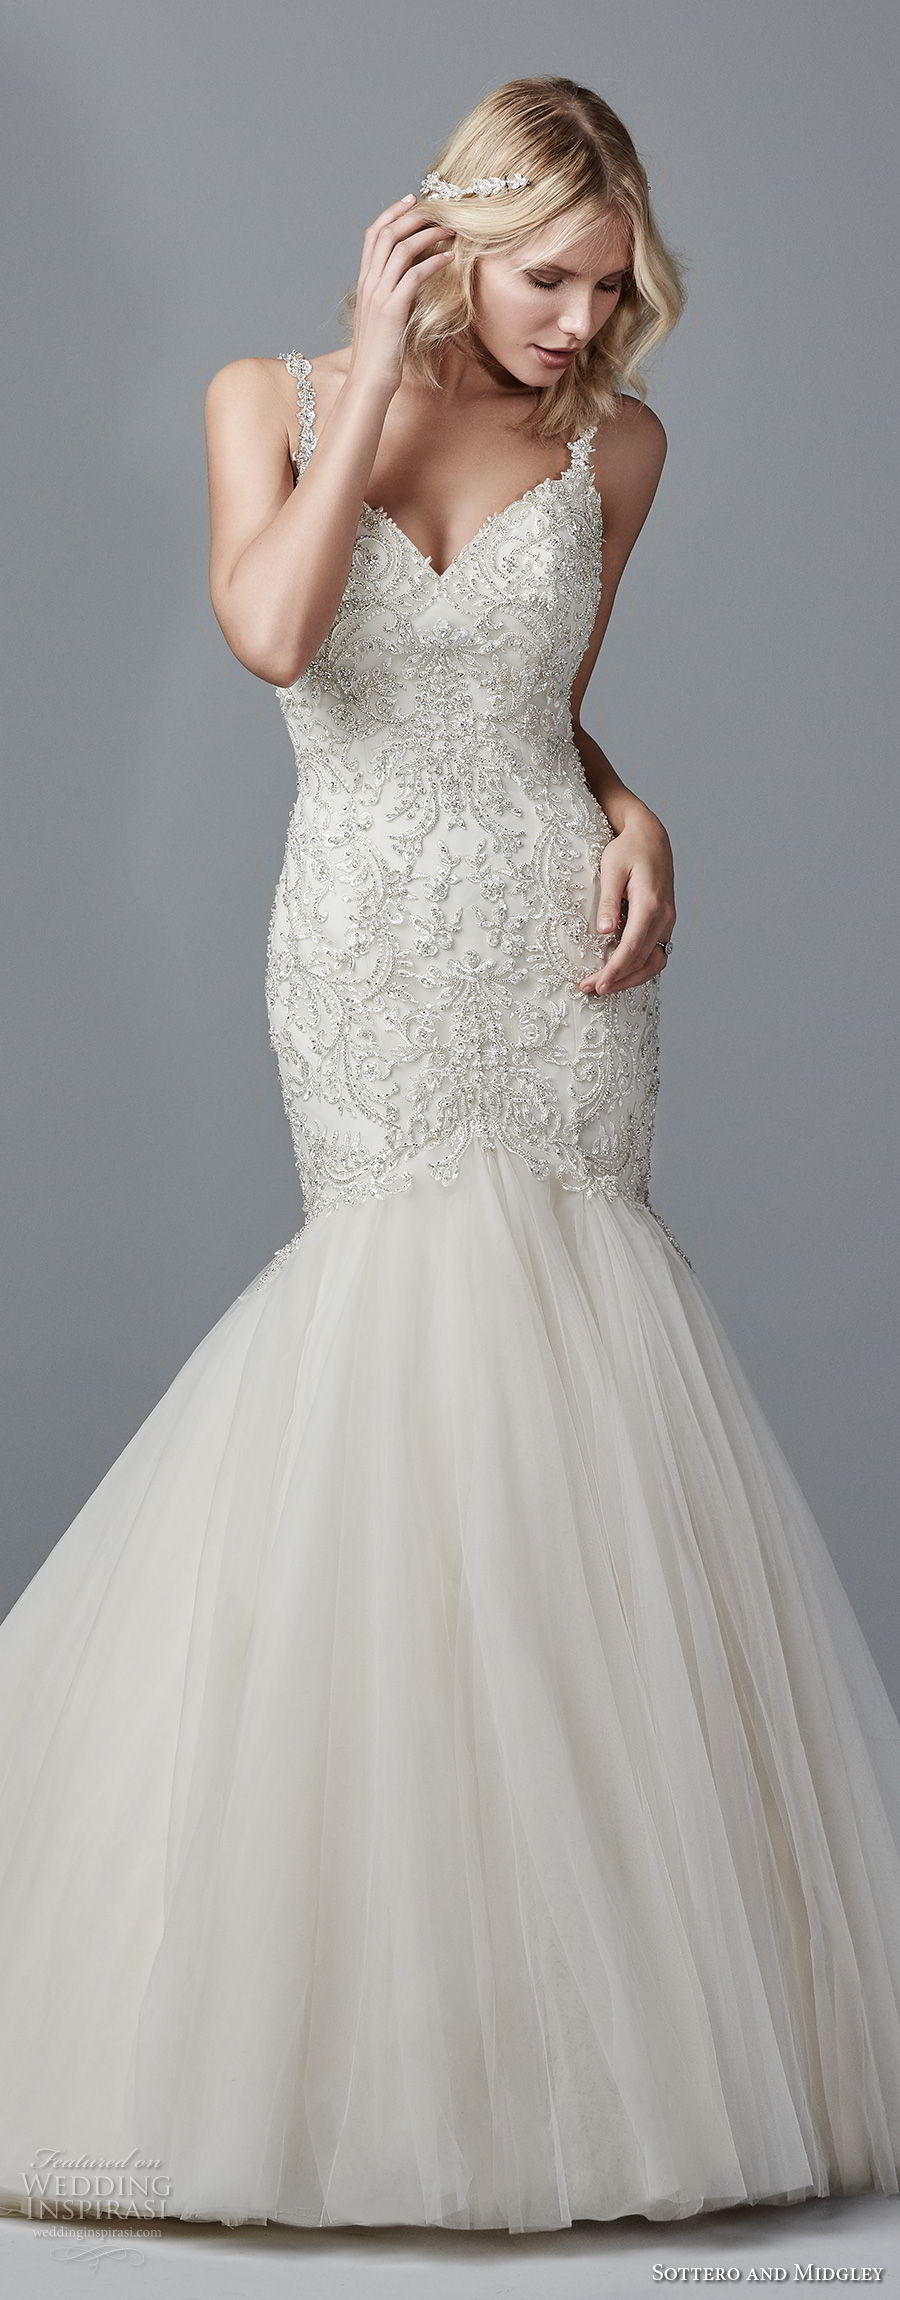 sottero midgley fall 2017 sleeveless strap v neck heavily embellished beaded bodice elegant mermaid wedding dress open v back chapel train (956) mv